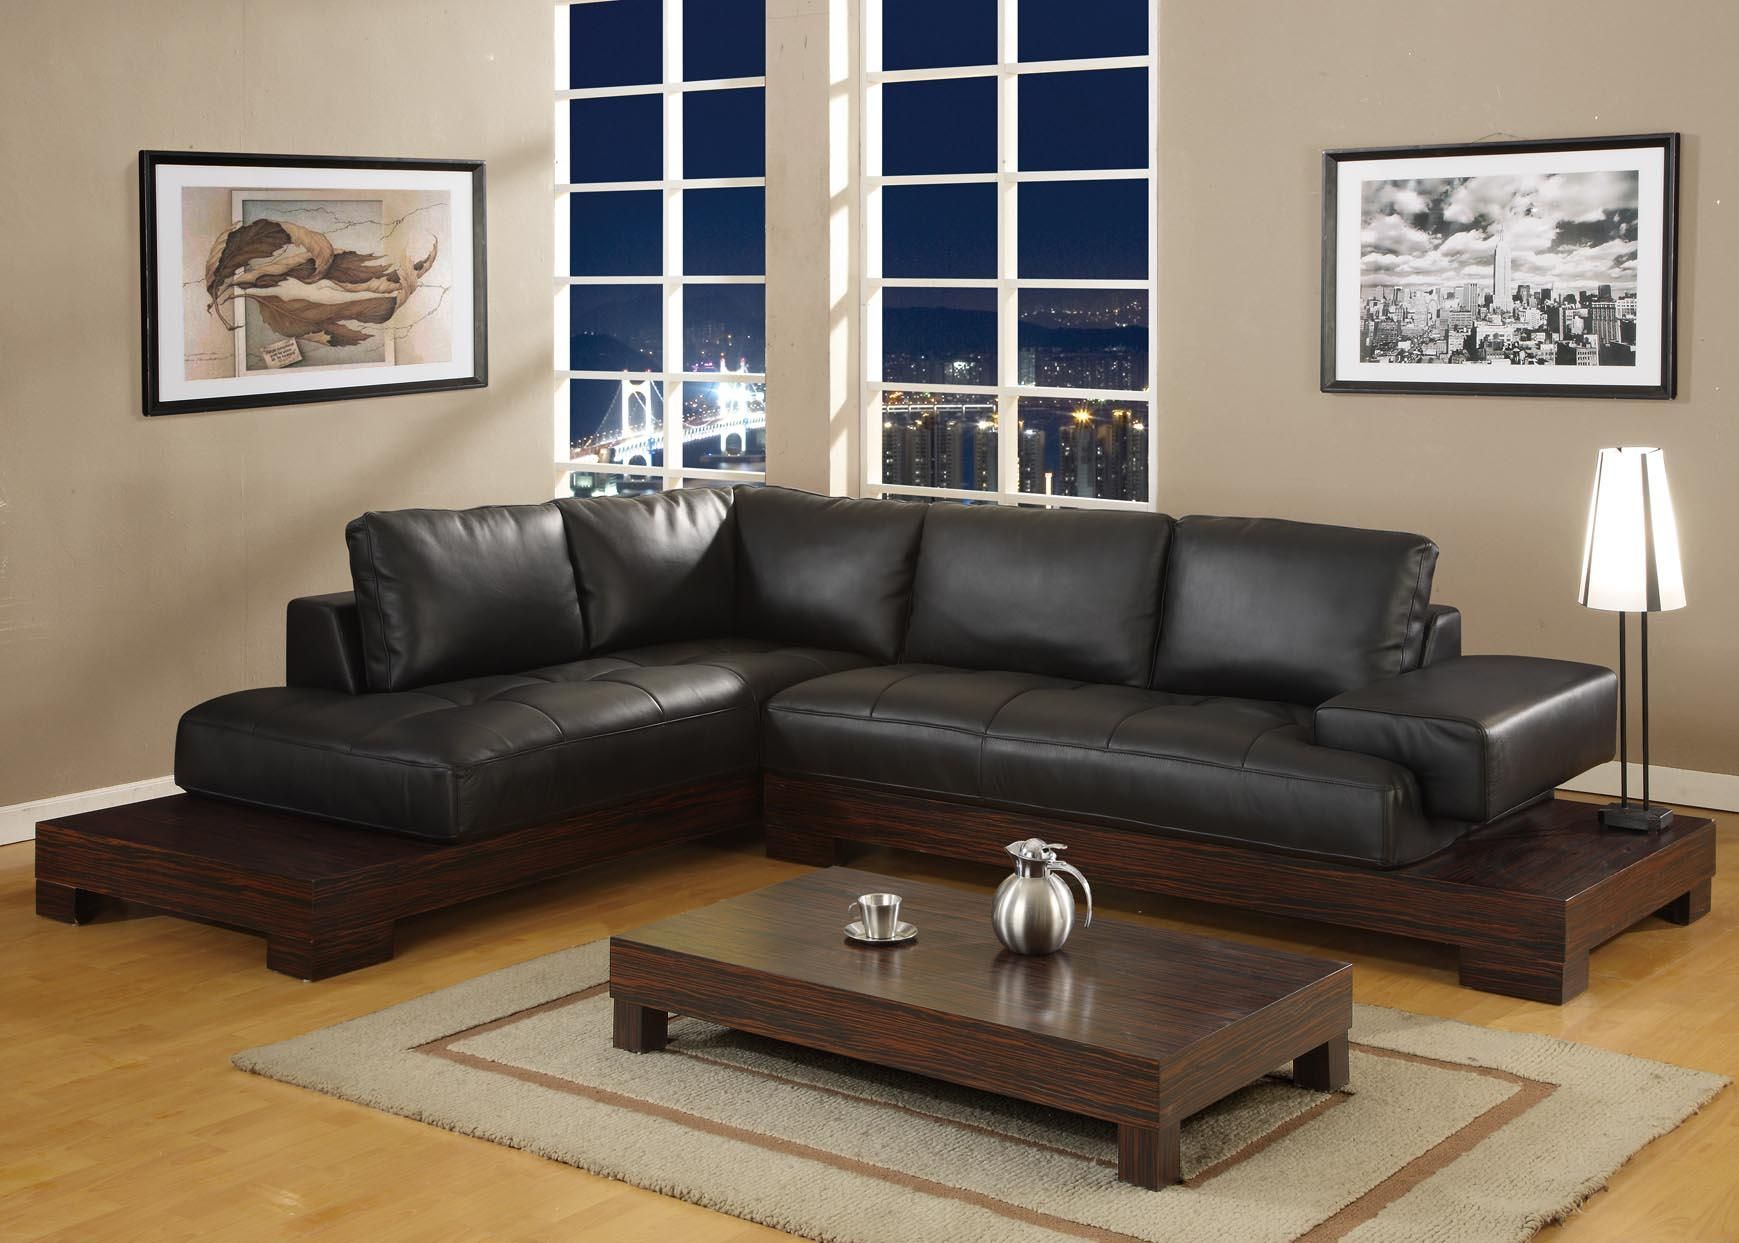 Gallery of paint colors for living room with black furniture